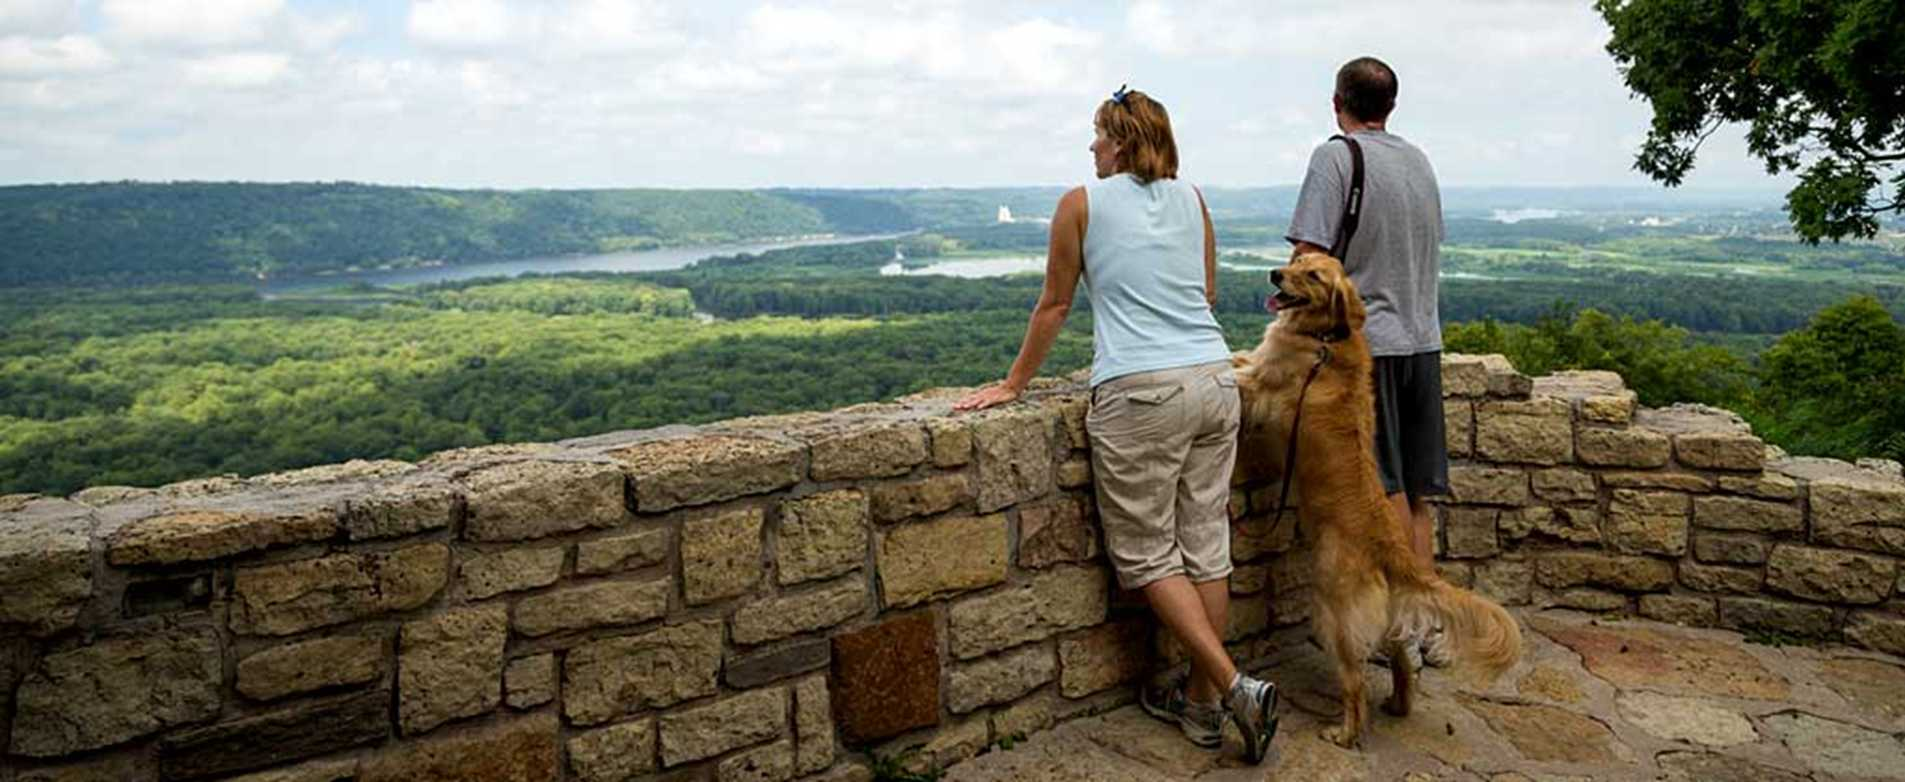 Wyalusing State Park overlook